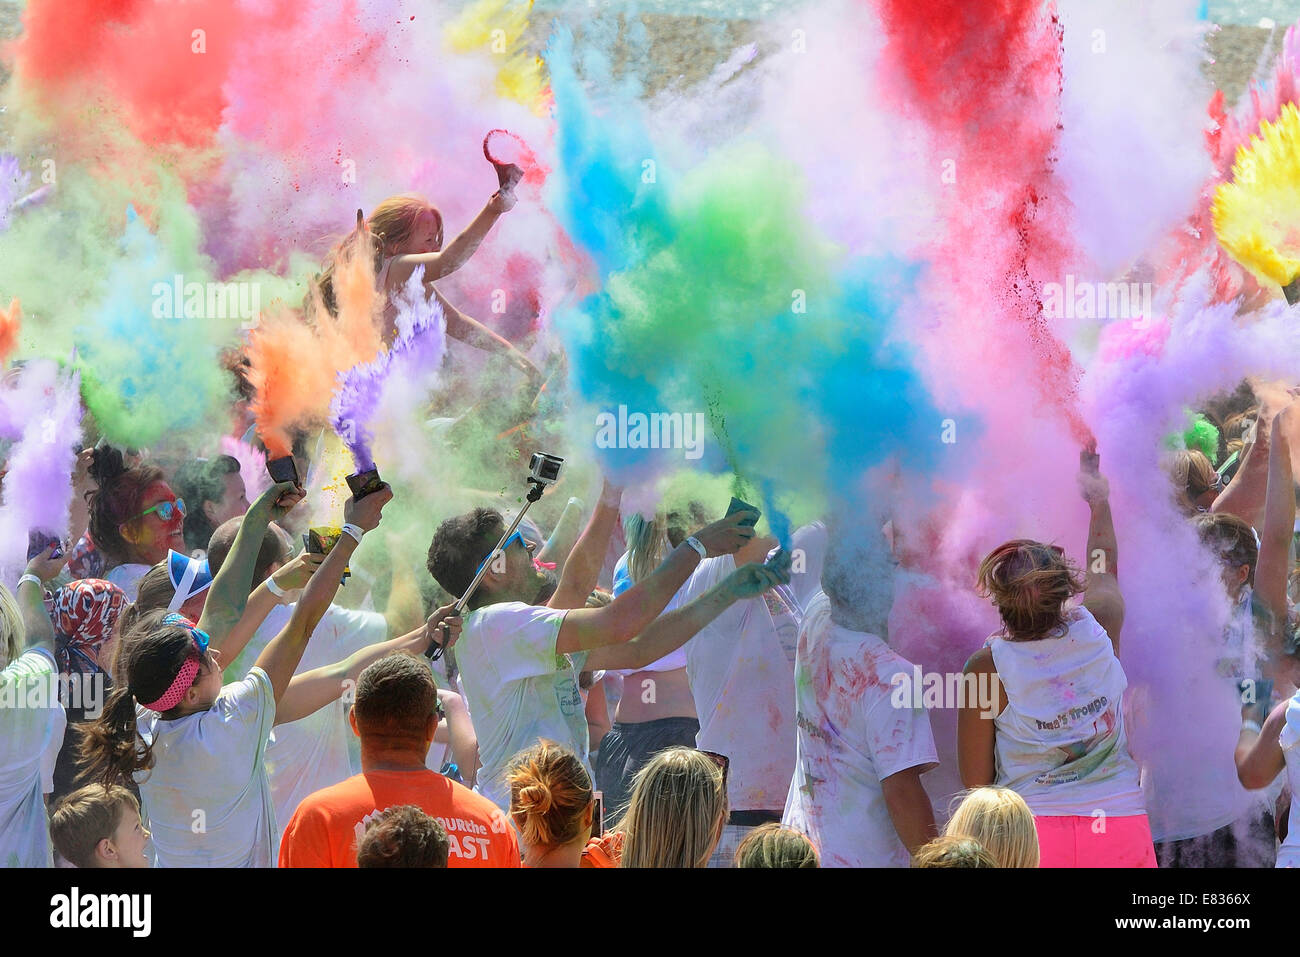 St Michael's Hospice 'Colour the Coast' event on Sunday 3rd August 2014. - Stock Image